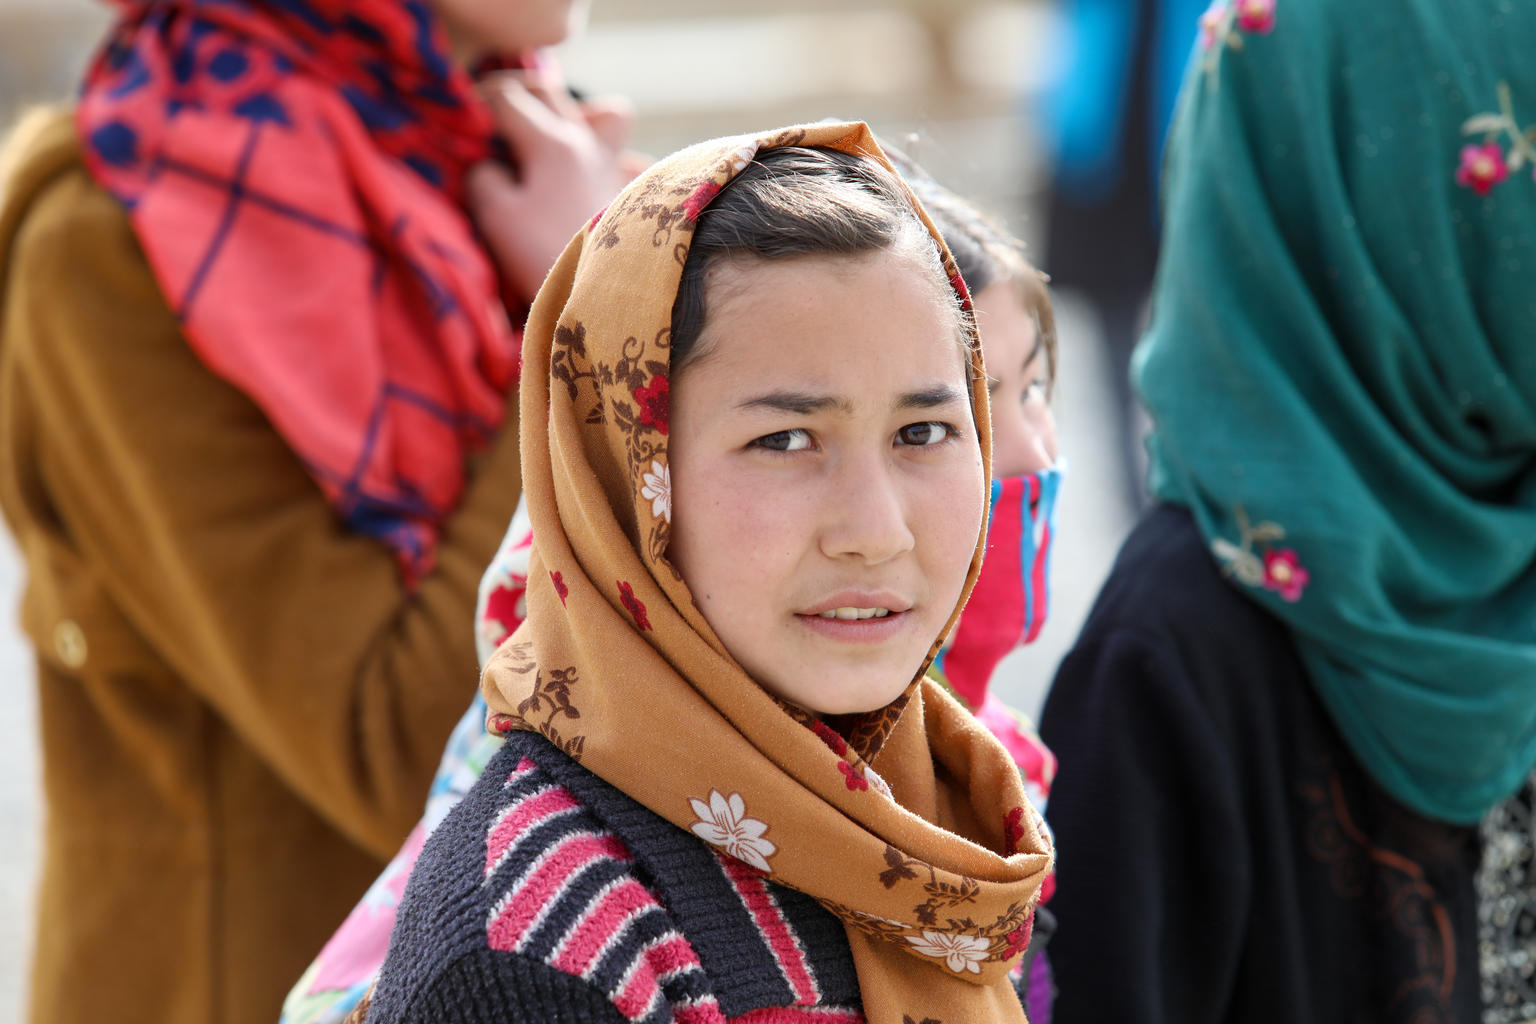 UNICEF Afghanistan is working to support adolescent girls and boys, by using sectoral and gender-based approaches for adolescent girls and boys with a focus on girls' education, prevention of child marriage